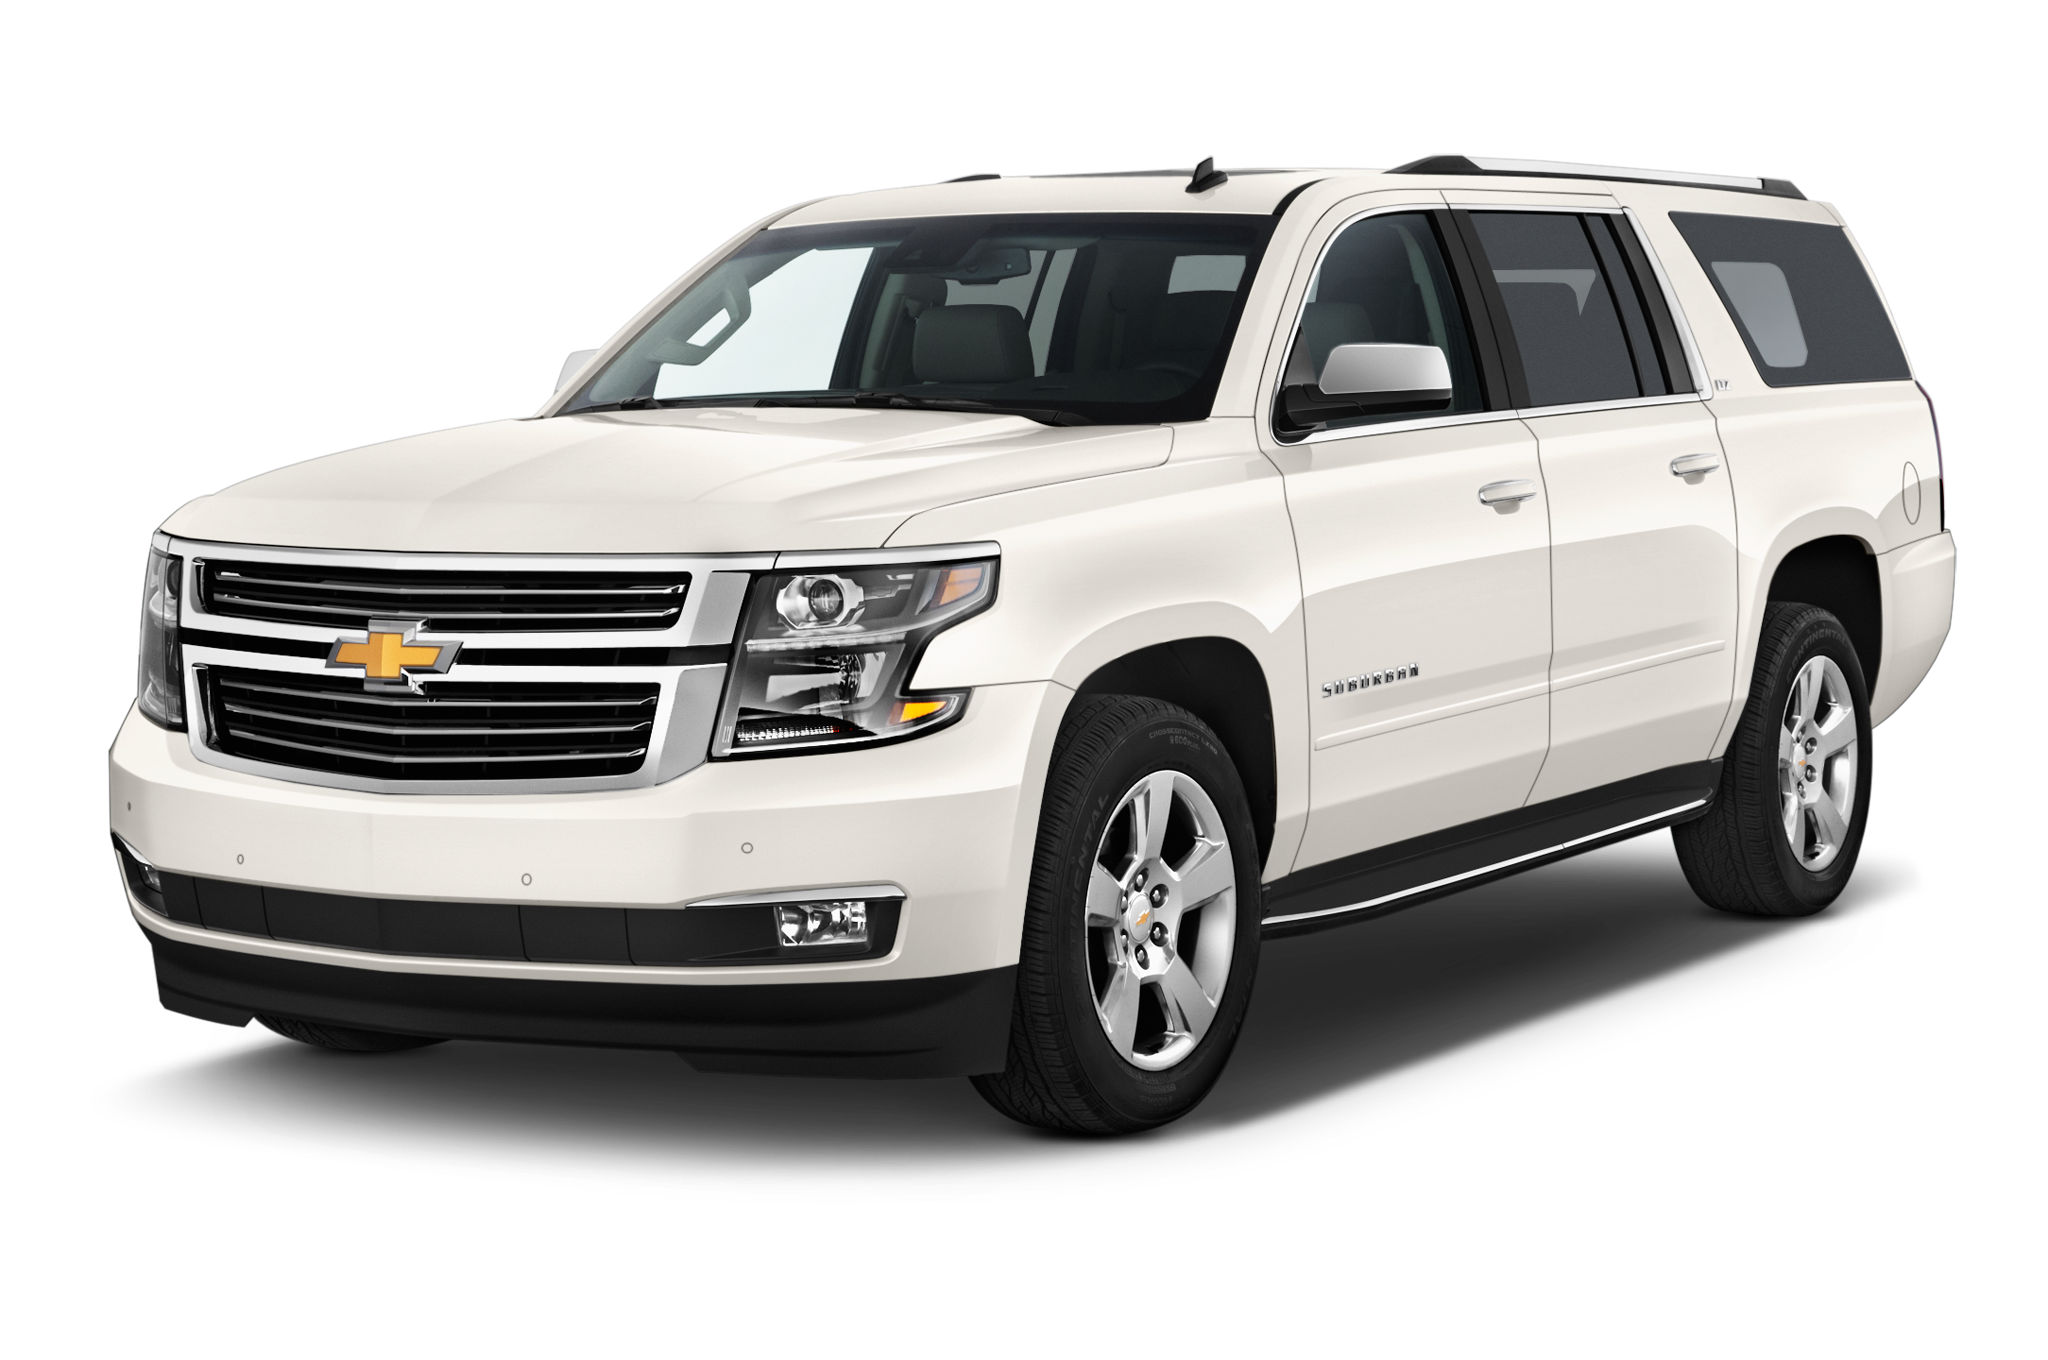 vs 2020 ford expedition the car 2020 chevrolet suburban vs 2020 ford ...